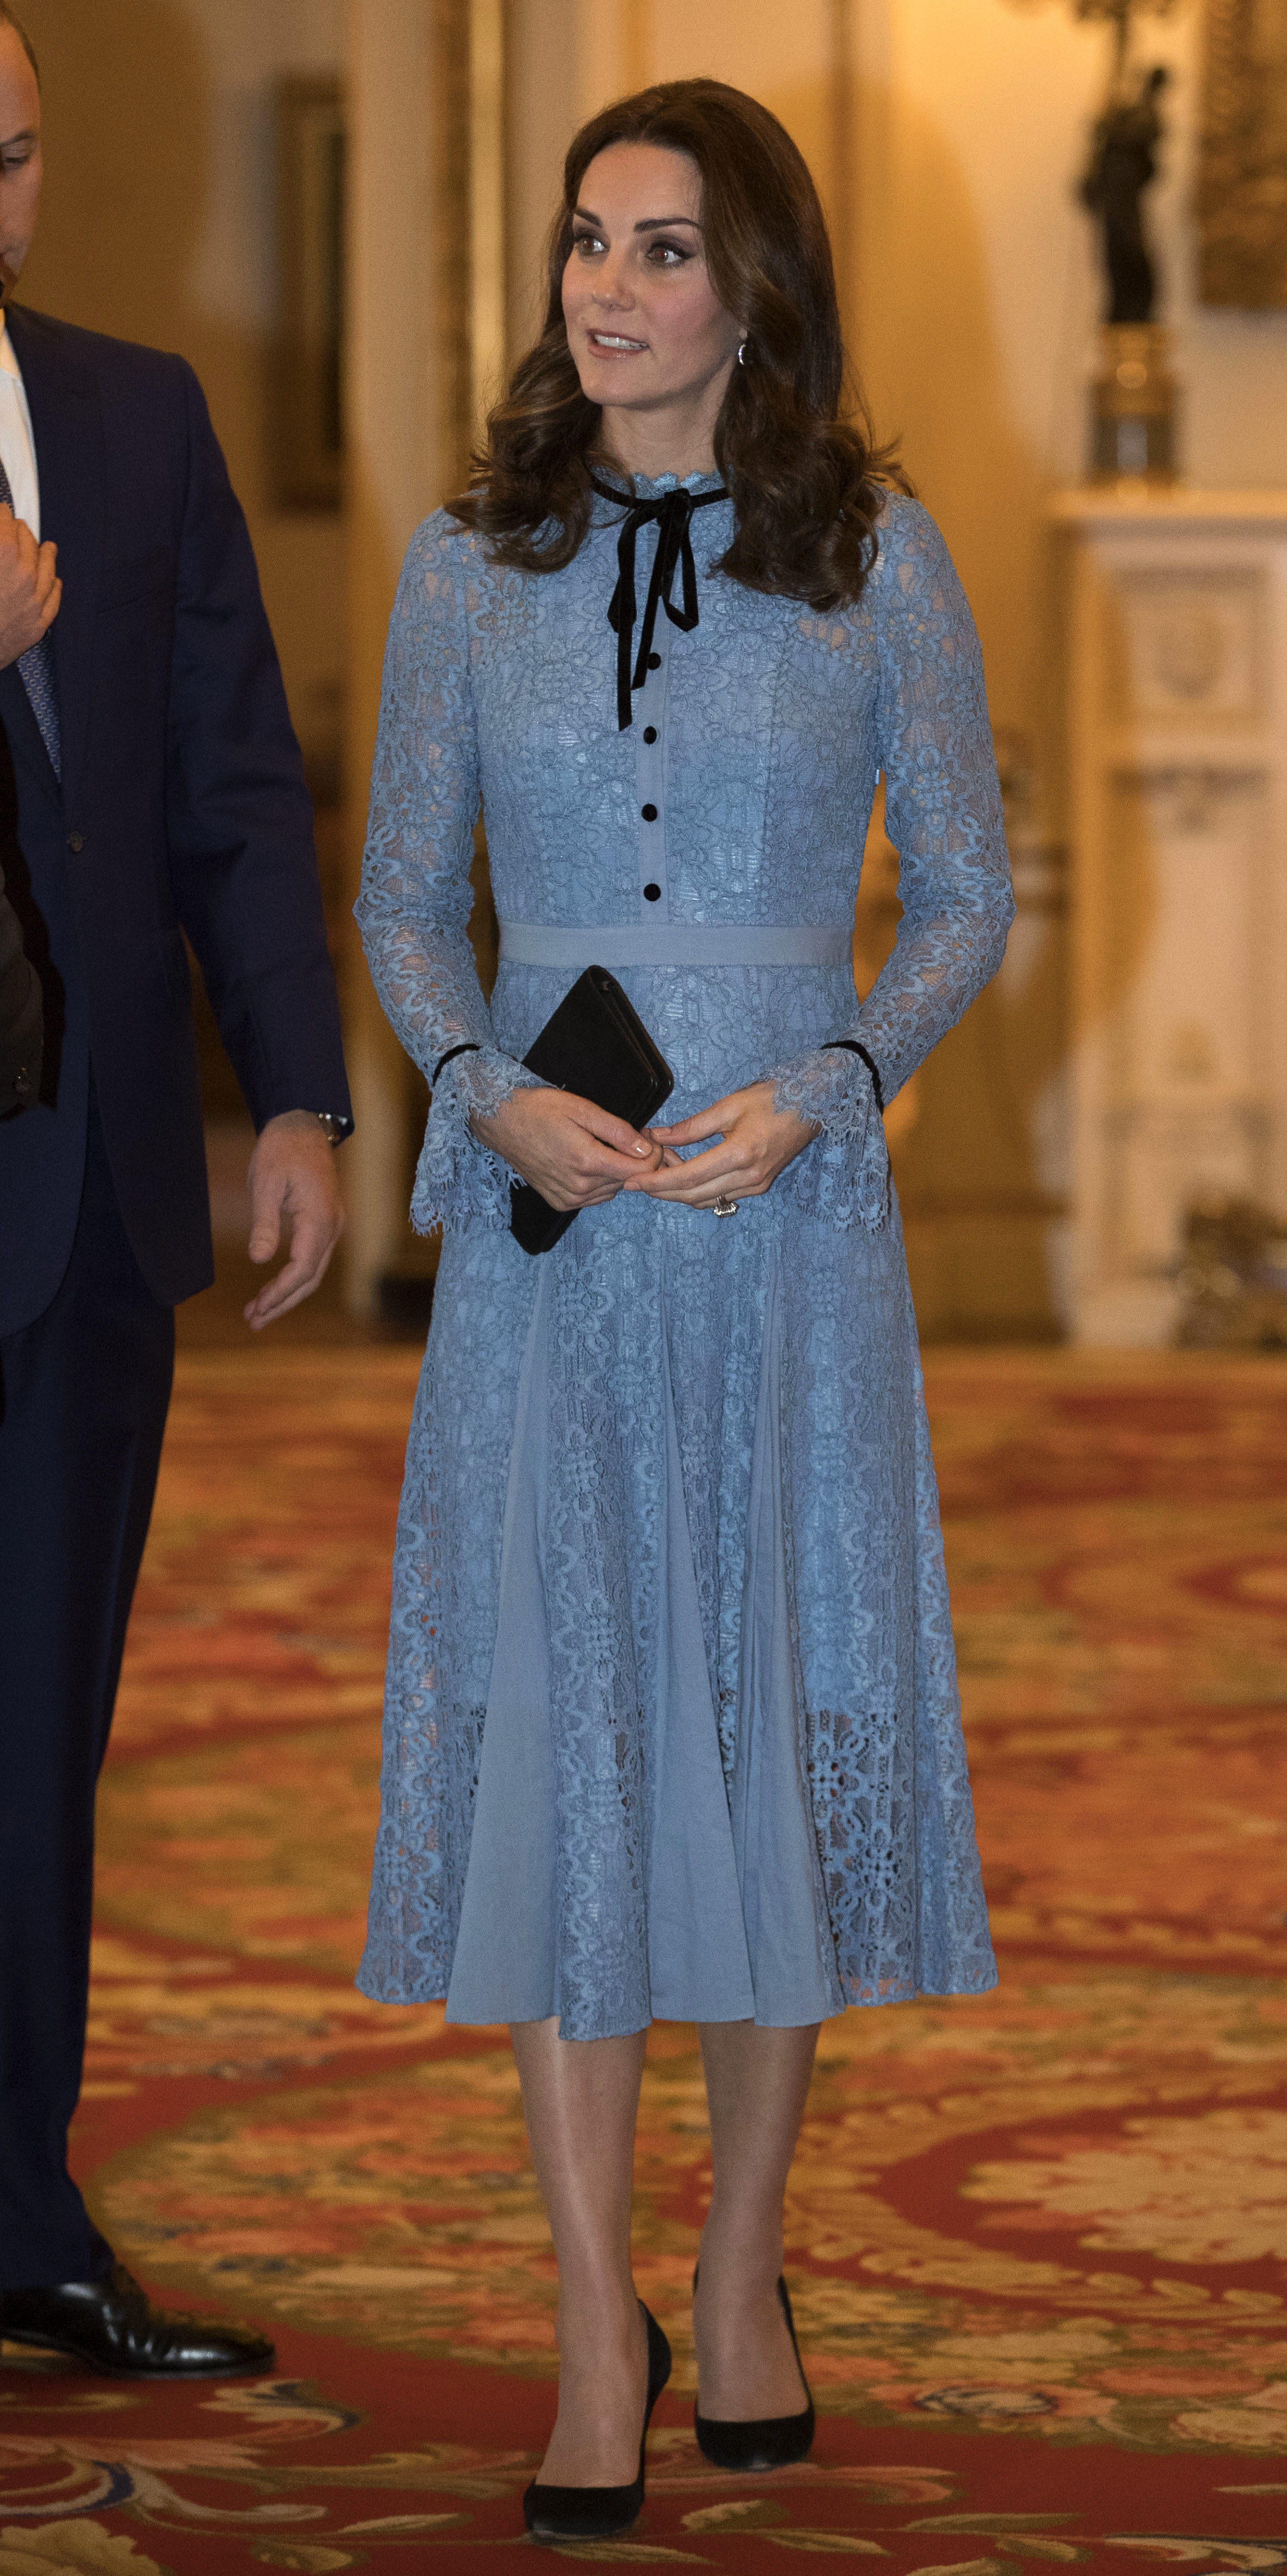 <div class='meta'><div class='origin-logo' data-origin='none'></div><span class='caption-text' data-credit='Heathcliff O'Malley/pool via AP'>Kate attends a reception at Buckingham Palace, London, to celebrate World Mental Health Day, Tuesday Oct. 10, 2017.</span></div>